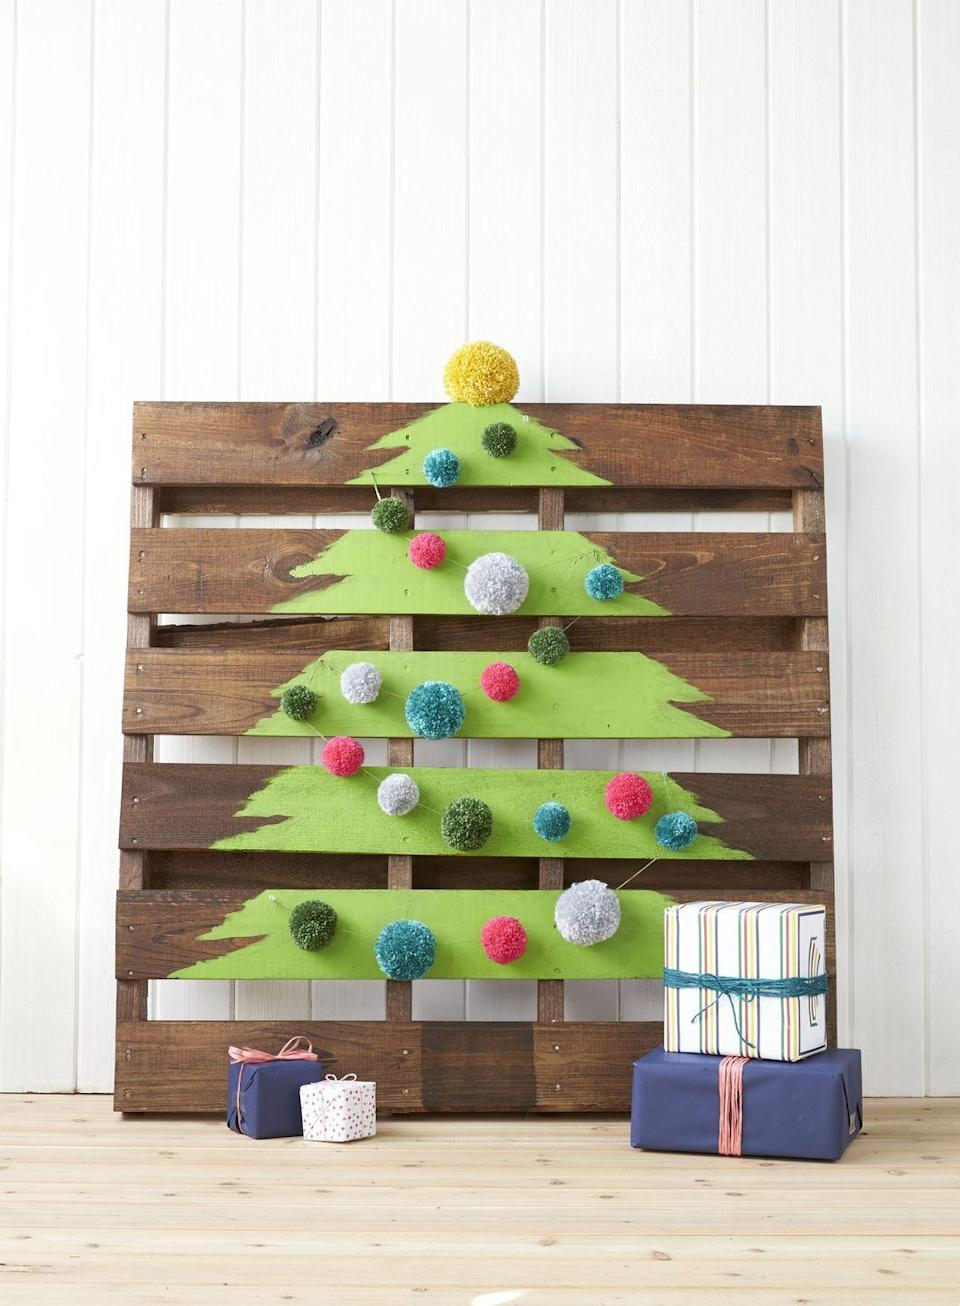 """<p>Paint a tree on a shipping crate (you can find 'em for cheap on eBay), and embellish the slats with pom-poms.</p><p><a class=""""link rapid-noclick-resp"""" href=""""https://go.redirectingat.com?id=74968X1596630&url=https%3A%2F%2Fwww.ebay.com%2Fsch%2Fi.html%3F_from%3DR40%26_trksid%3Dp2053587.m570.l1313.TR10.TRC0.A0.H0.Xshipping%2Bpallet.TRS0%26_nkw%3Dshipping%2Bpallet%26_sacat%3D0&sref=https%3A%2F%2Fwww.countryliving.com%2Fhome-design%2Fdecorating-ideas%2Fadvice%2Fg1247%2Fholiday-decorating-1208%2F"""" rel=""""nofollow noopener"""" target=""""_blank"""" data-ylk=""""slk:SHOP PALLETS"""">SHOP PALLETS</a></p>"""